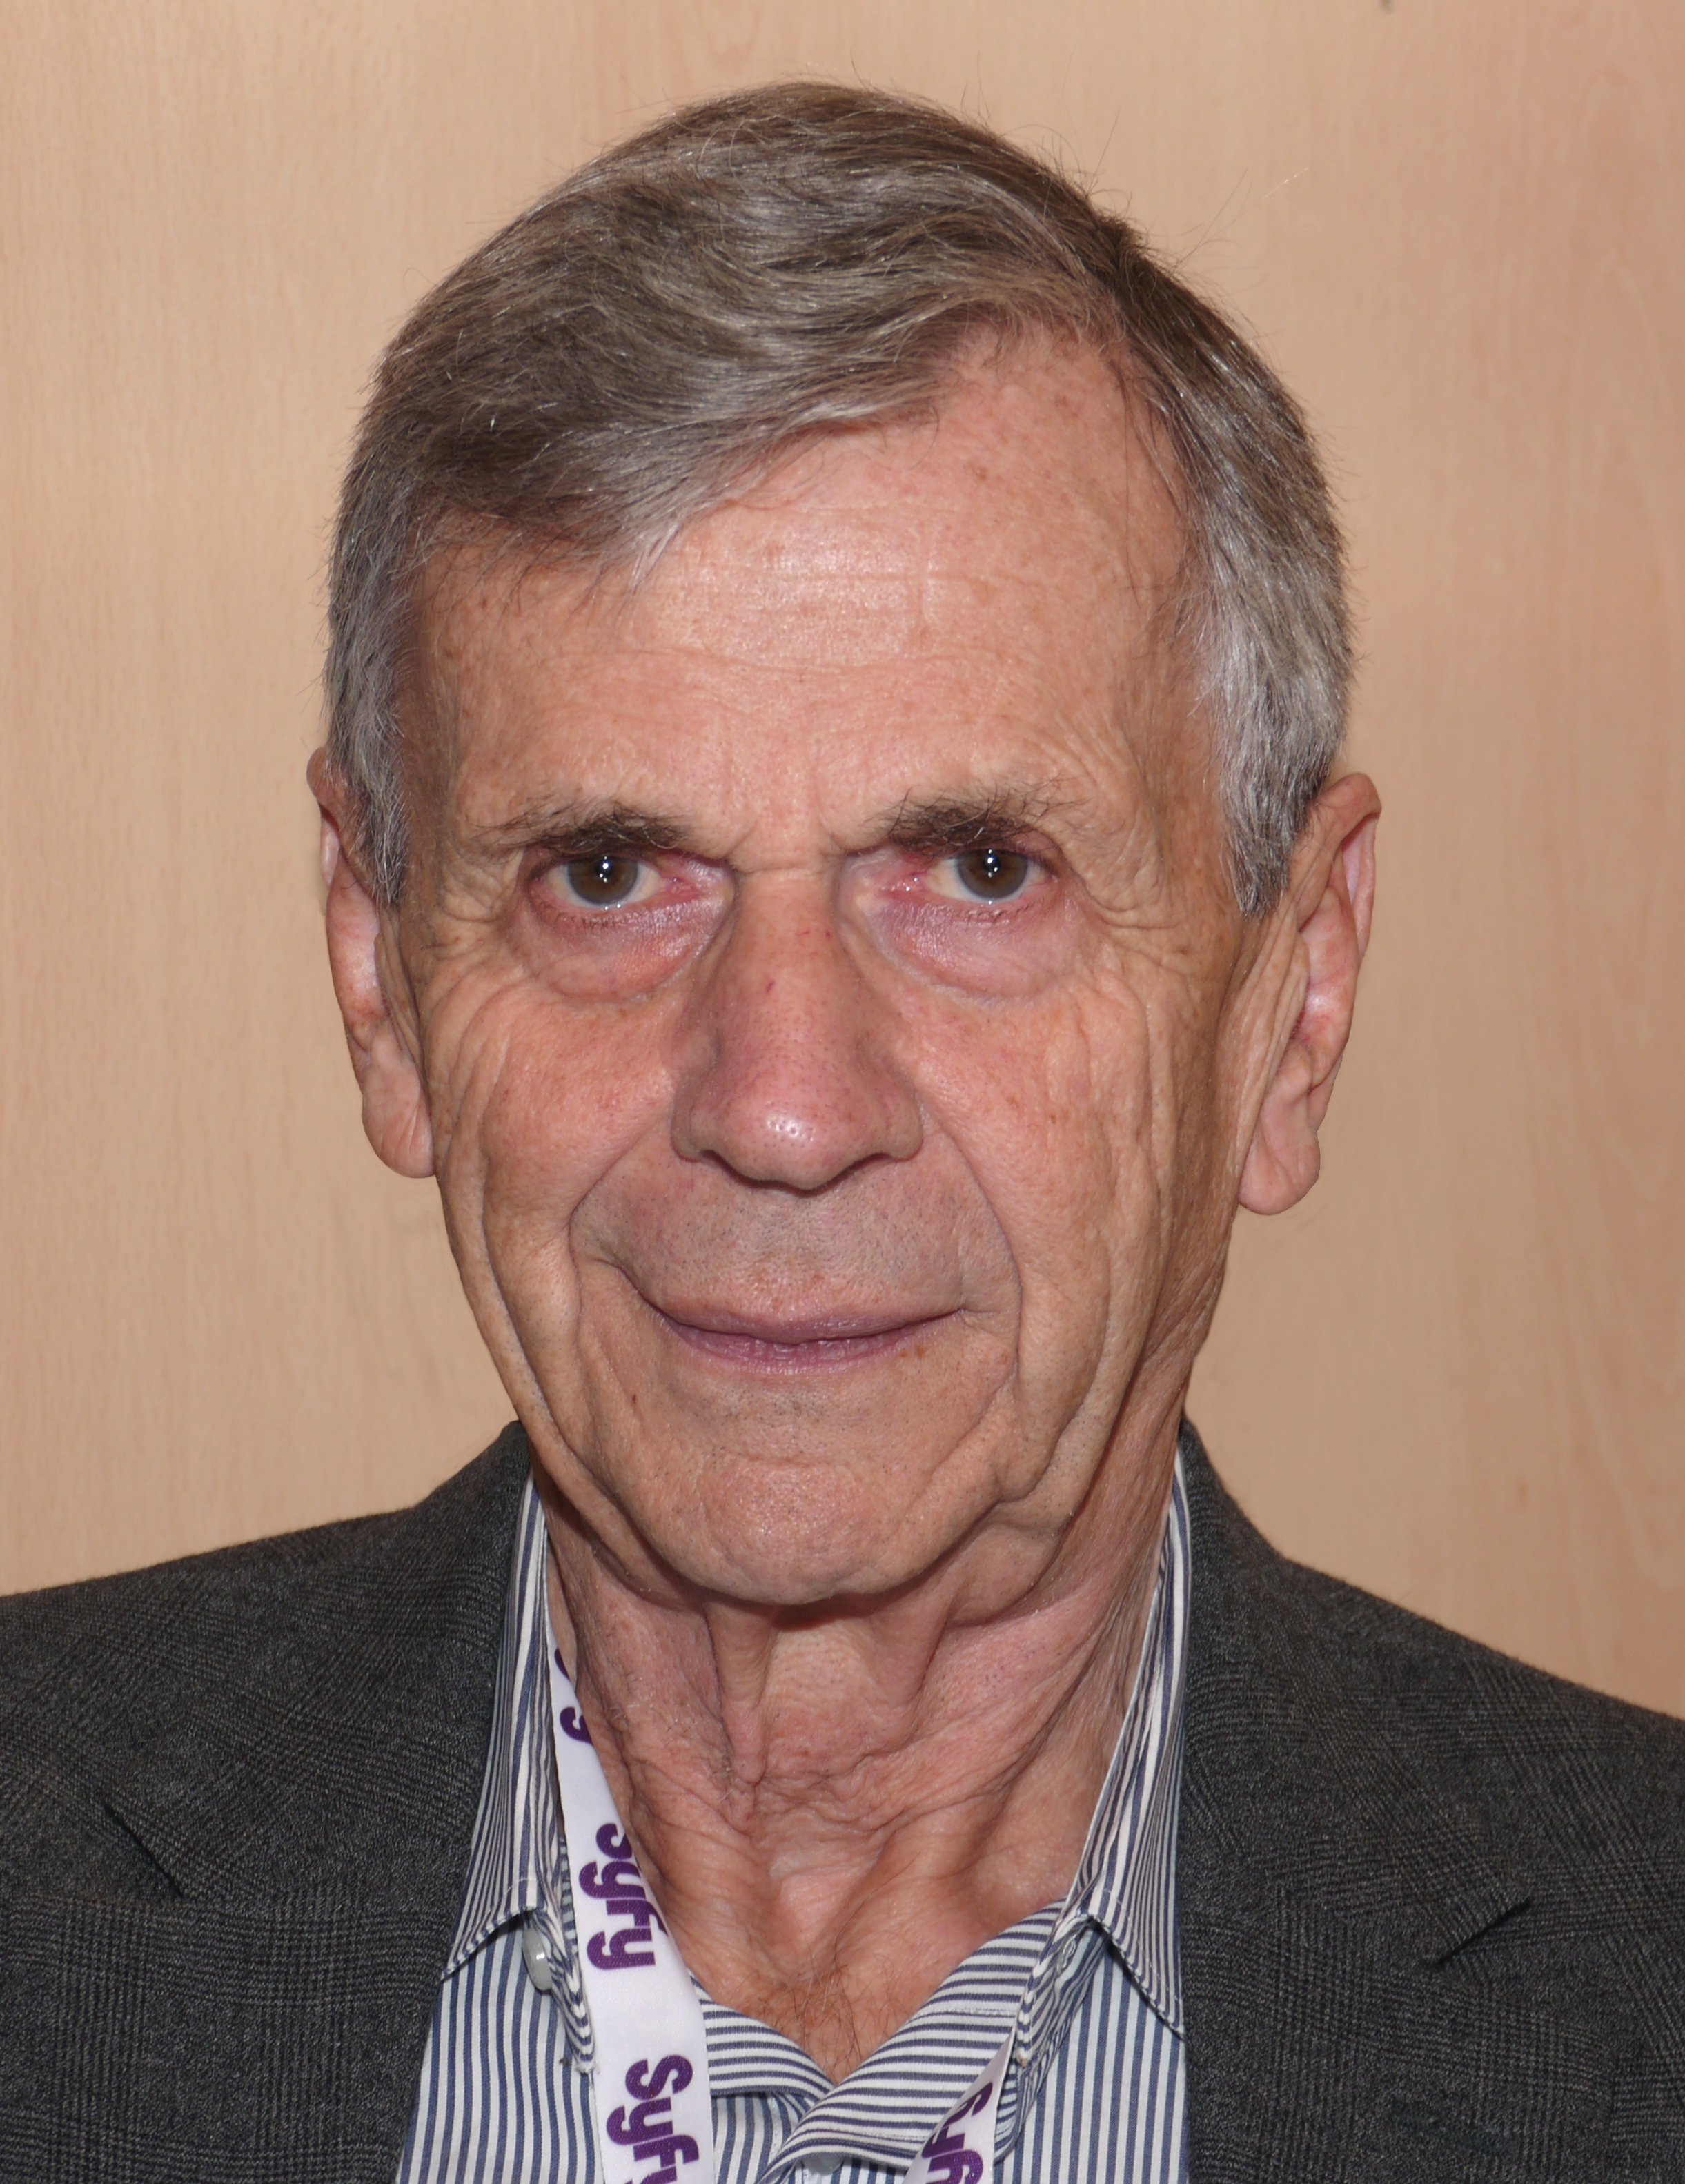 William B. Davis nude (82 foto and video), Topless, Leaked, Boobs, cameltoe 2015